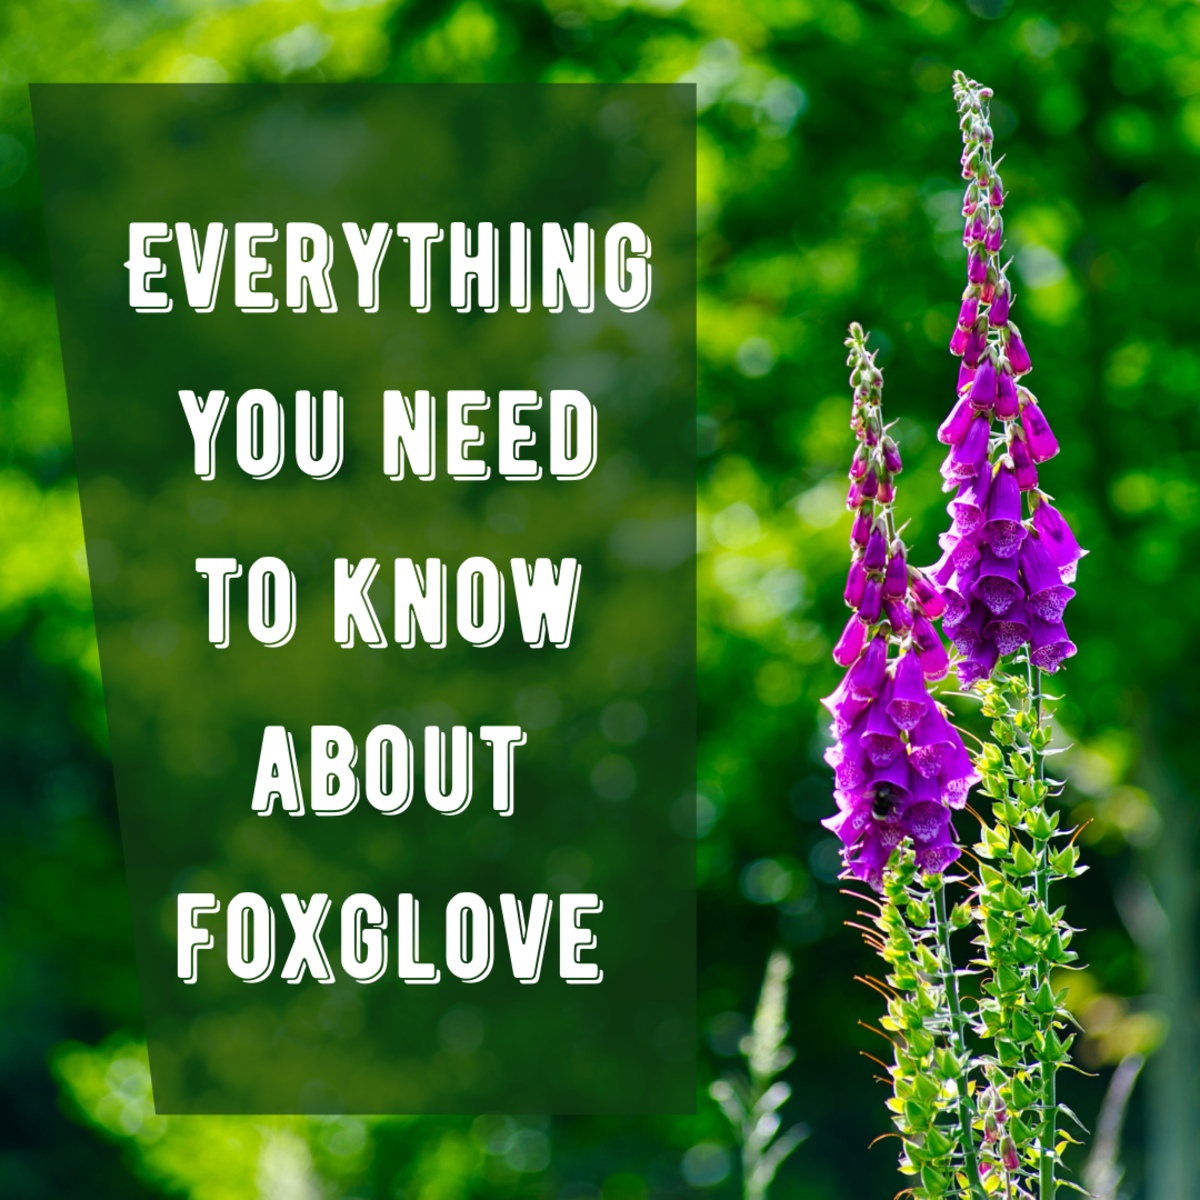 This article provides an overview of the foxglove plant, including tips for growing and garden applications